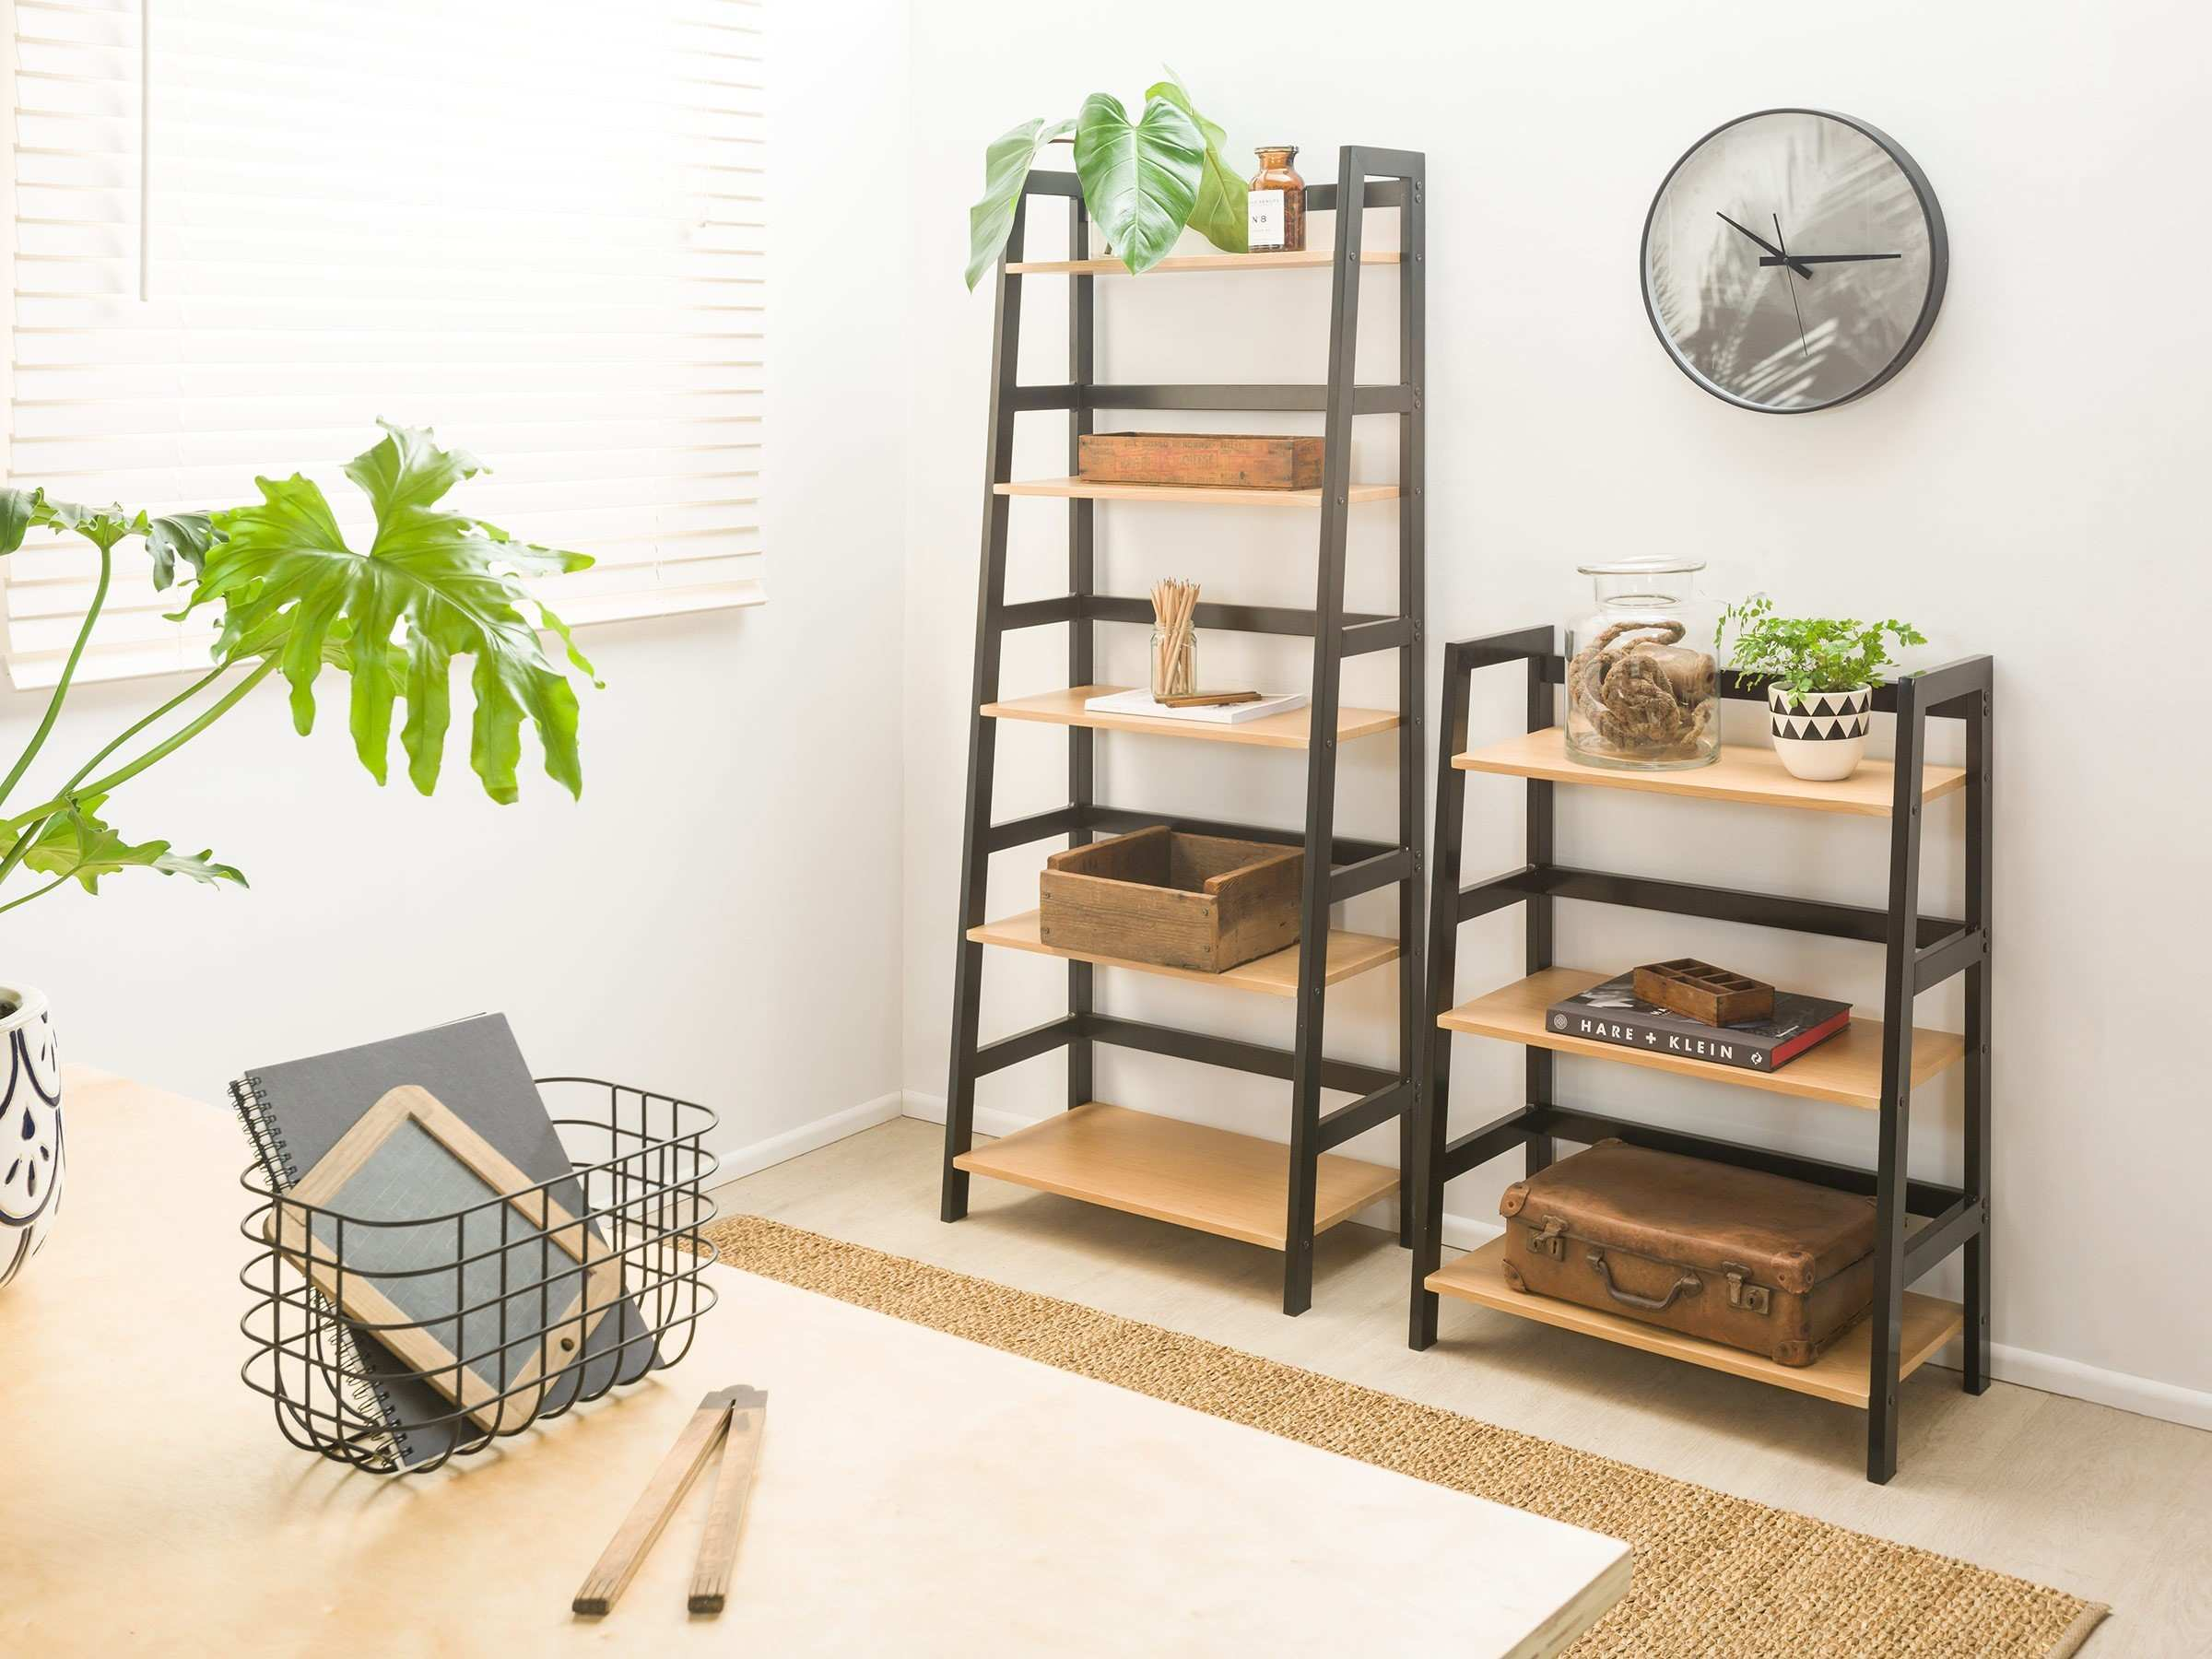 Vigo Shelves Shelving Units